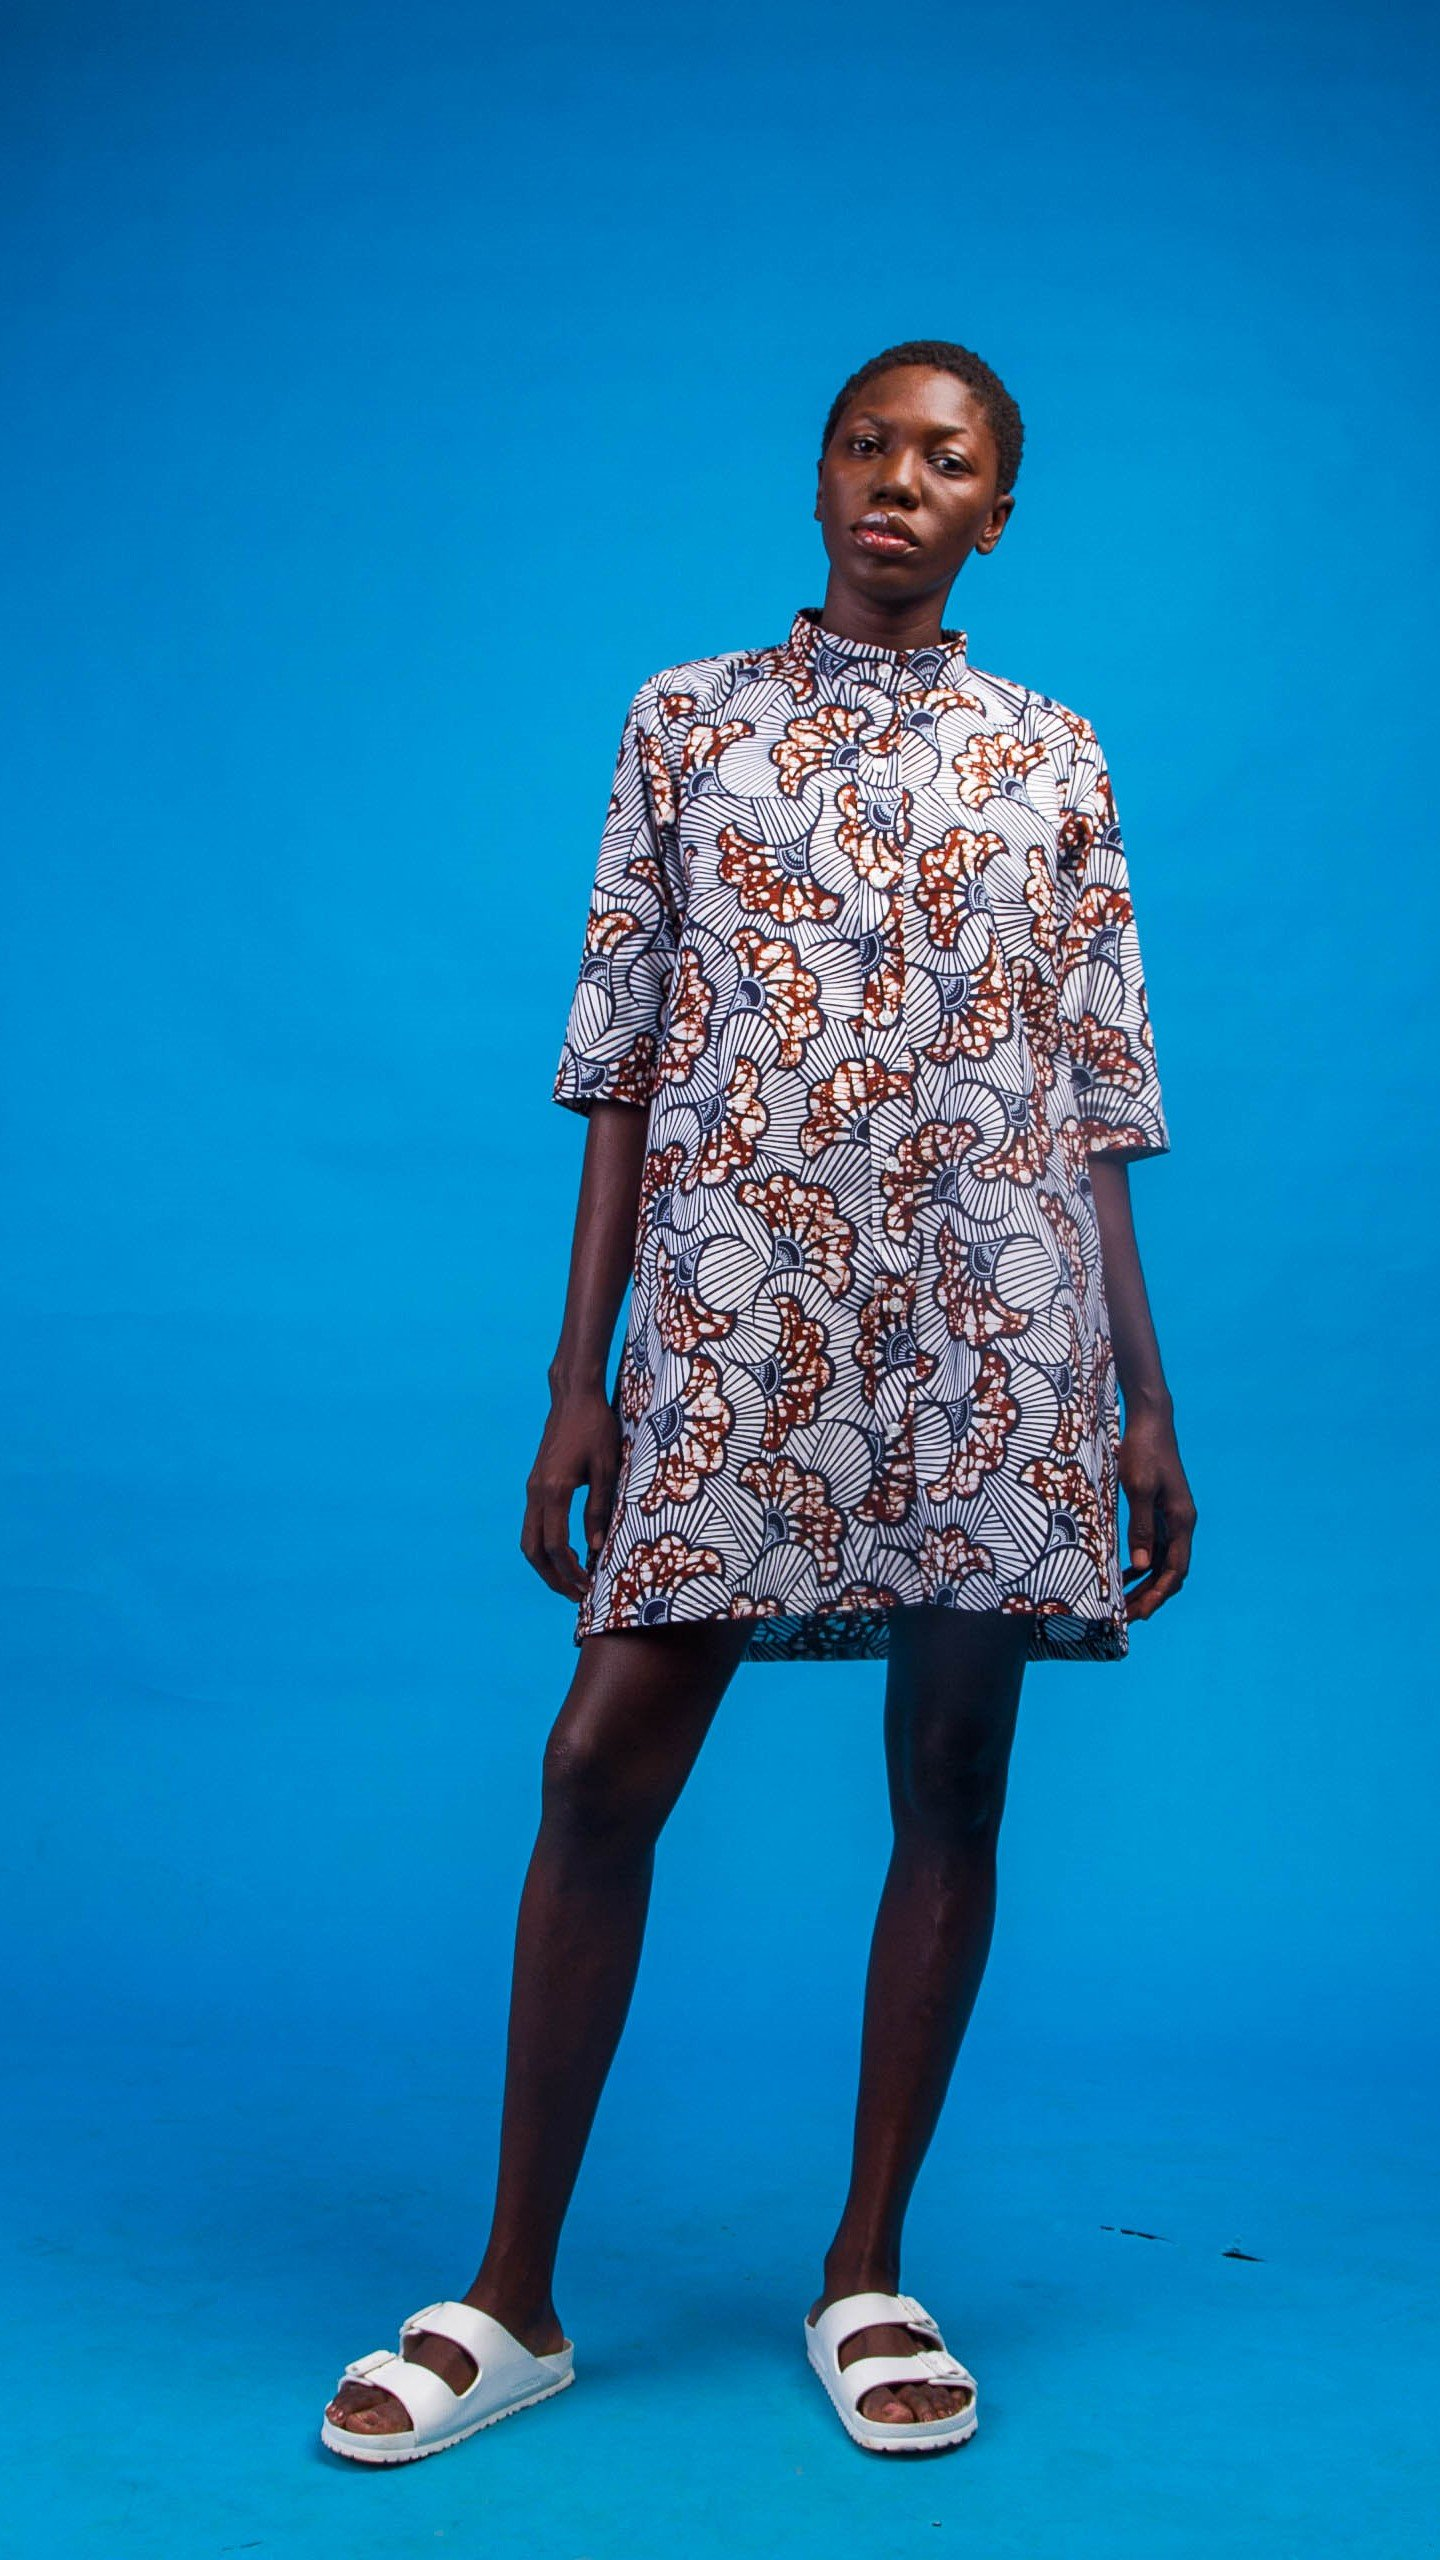 Ama African Print Shirtdress from Atelier D'Afrique